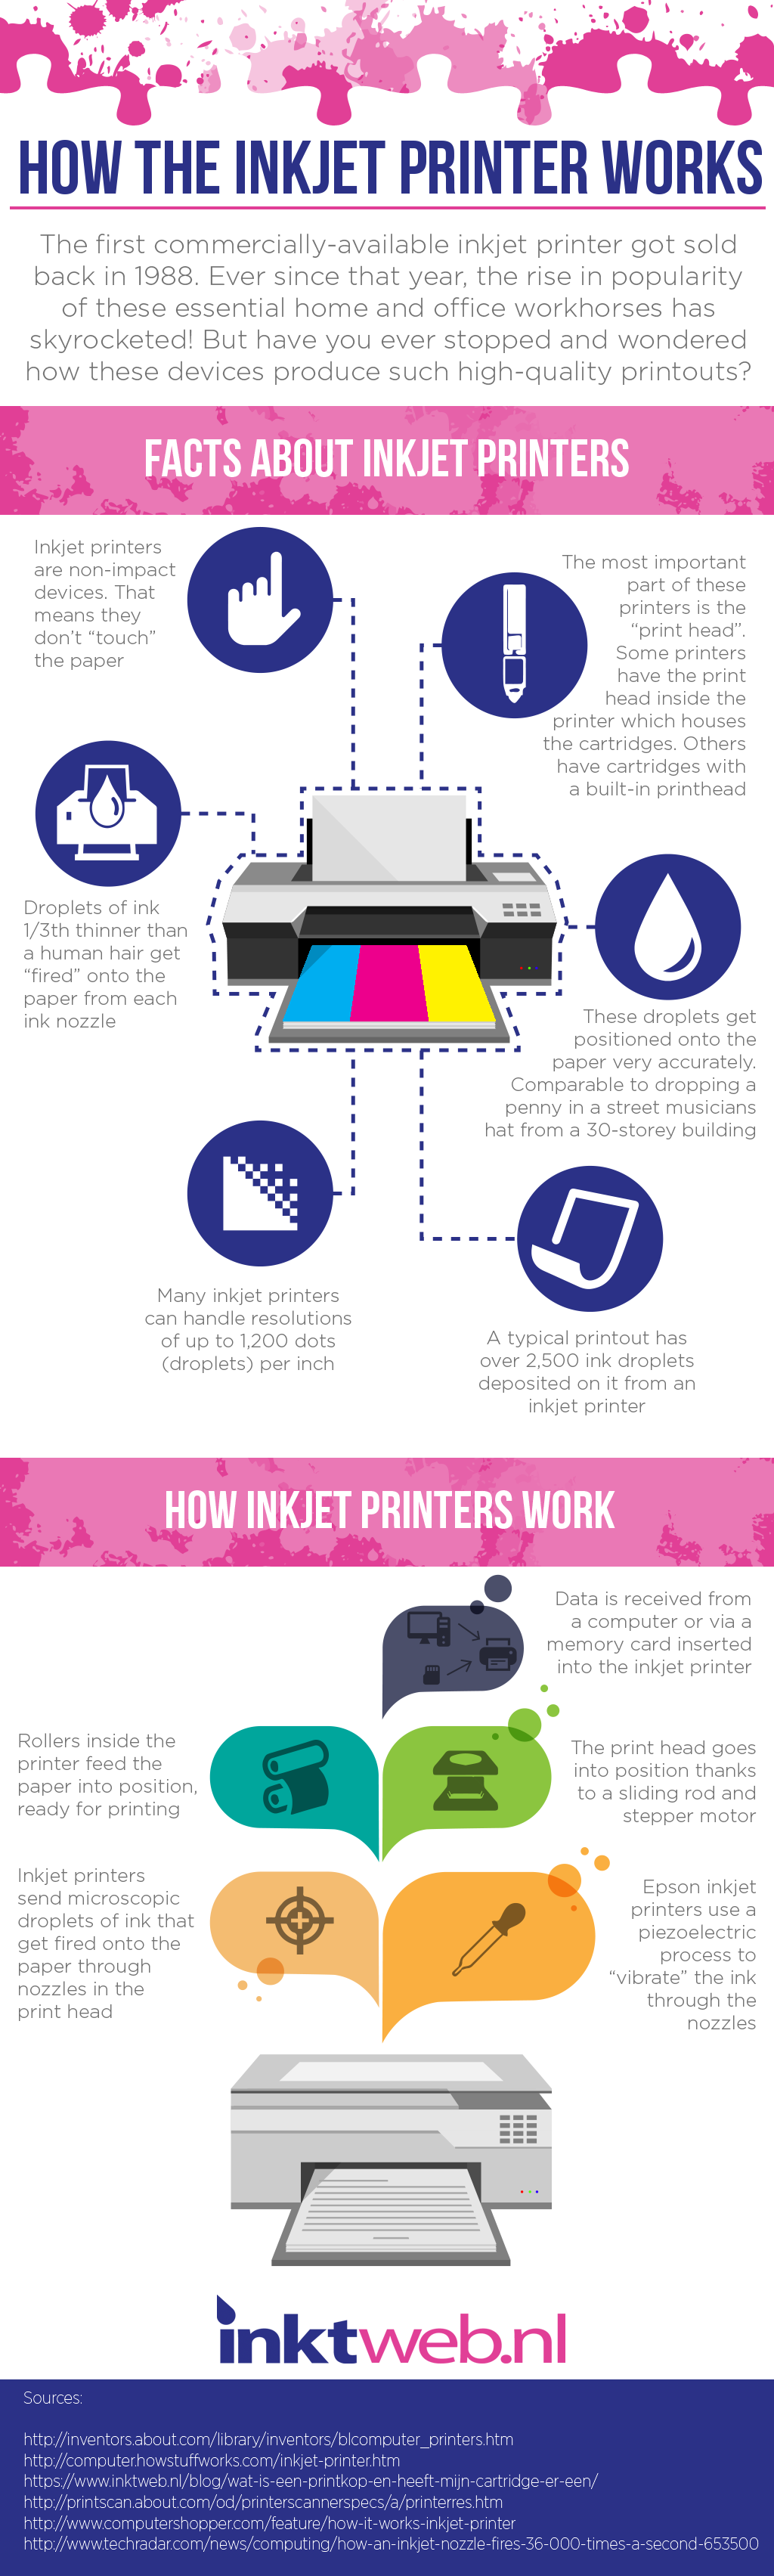 how a printer works